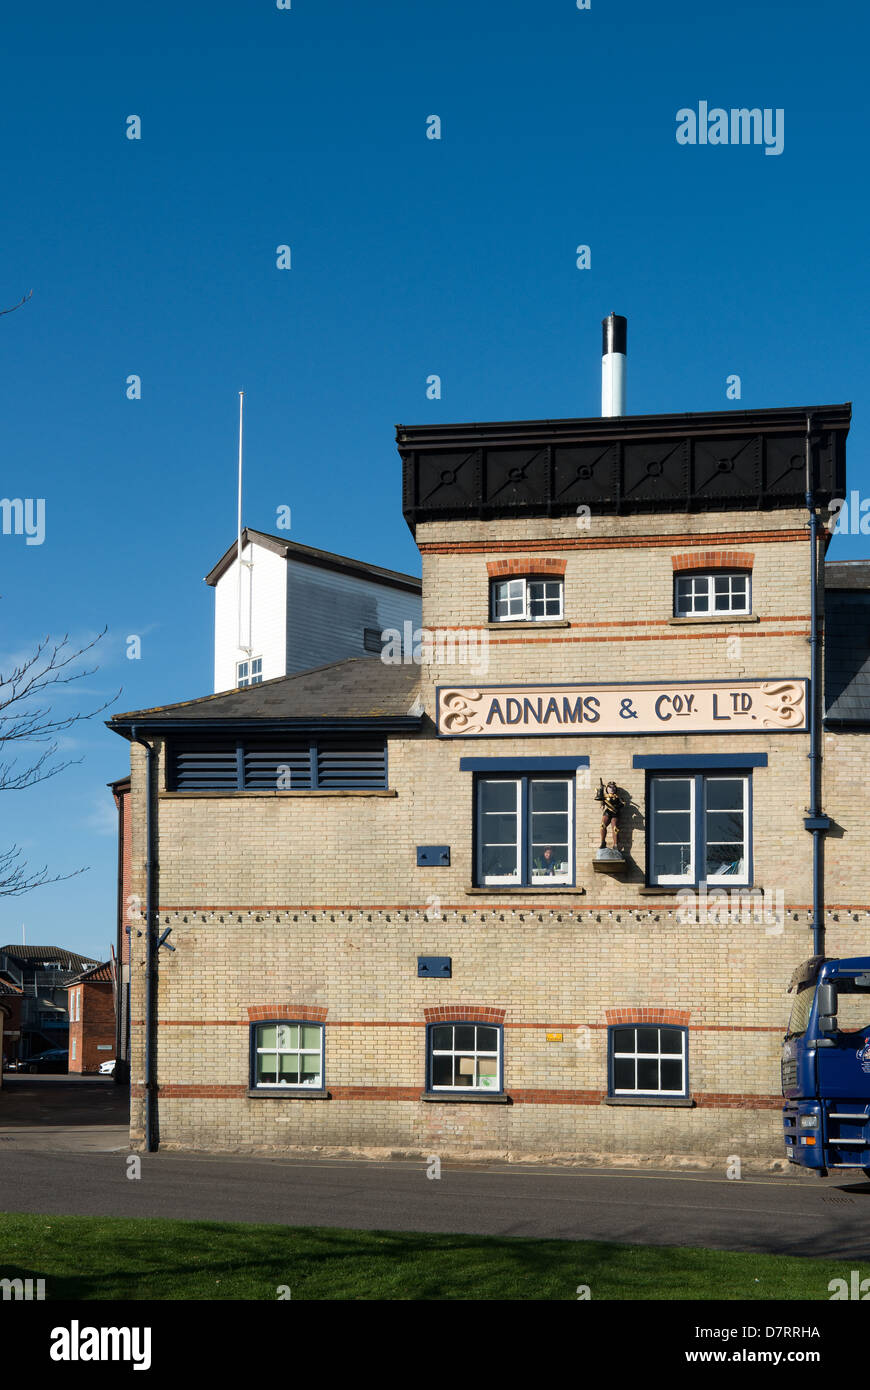 Adnams & Company Brewery, Southwold, Suffolk, UK -1 - Stock Image